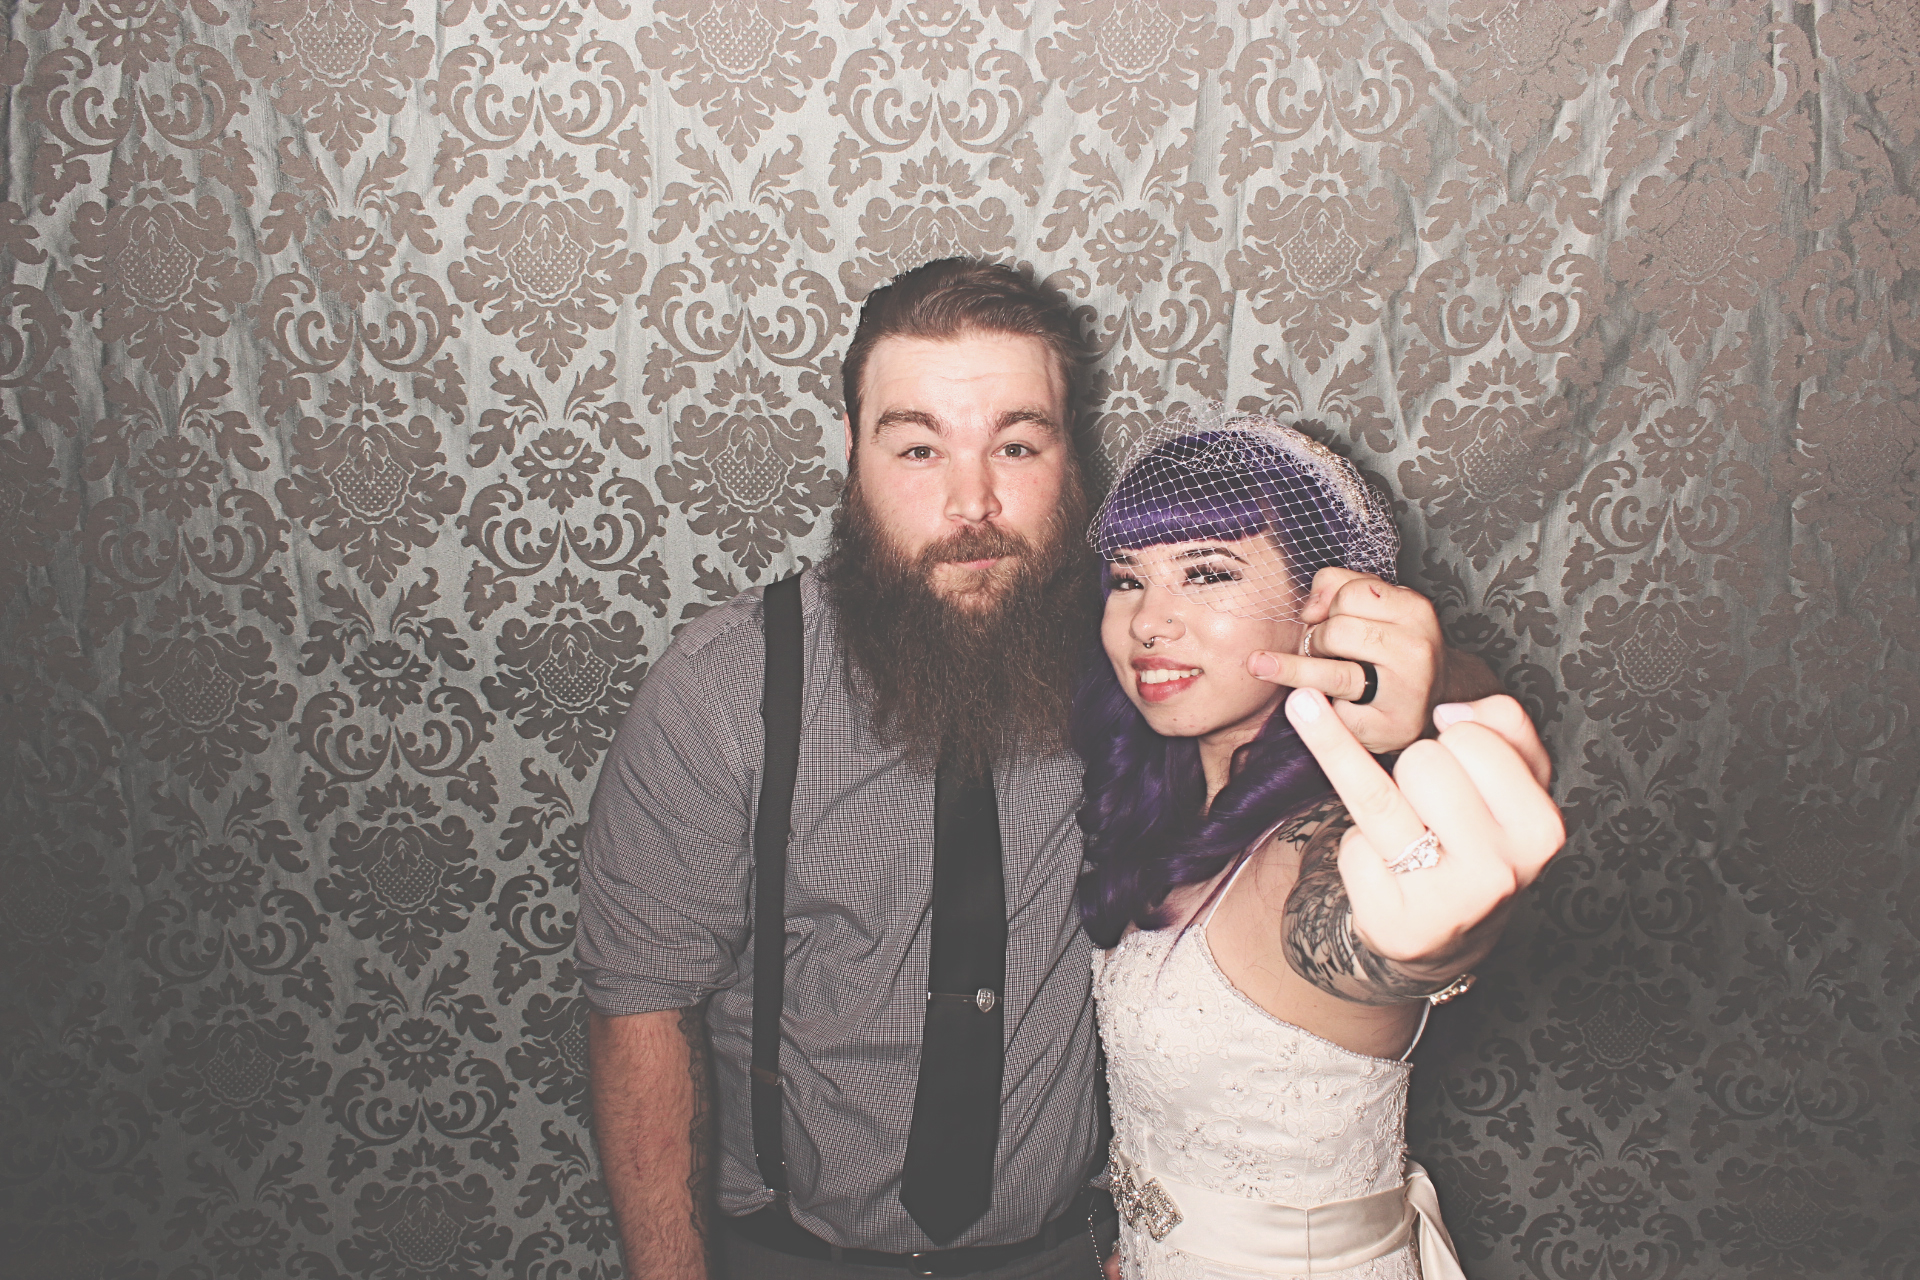 9-20-15 JC Atlanta The Rock Barn PhotoBooth - Errol and Heather's Wedding - RobotBooth20150920_298